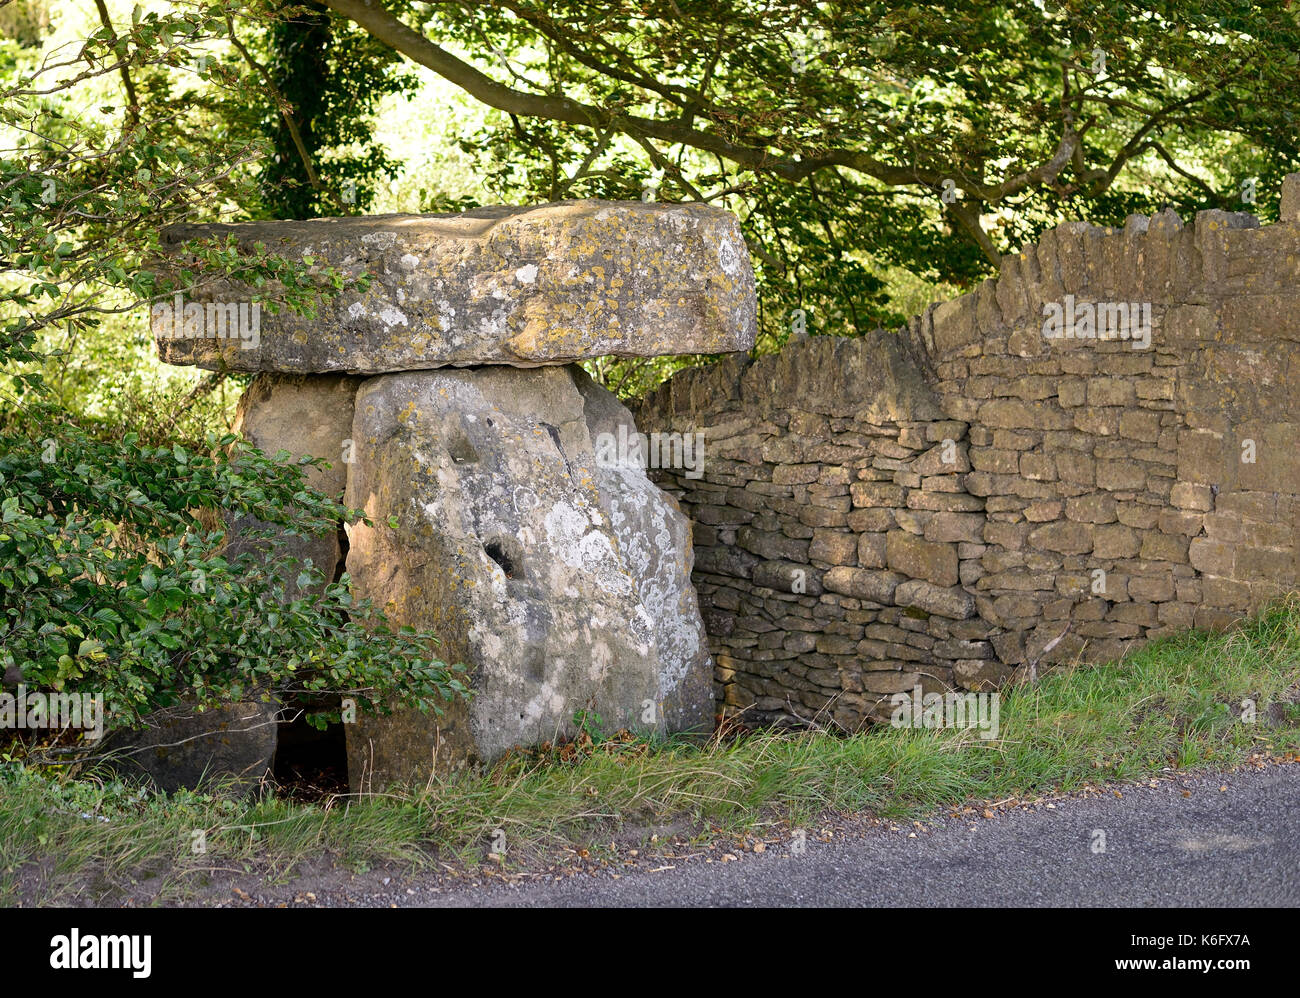 The Three Shire Stones, beside the route of the Fosse Way Roman road, which is now a minor tarmac road heading north Stock Photo